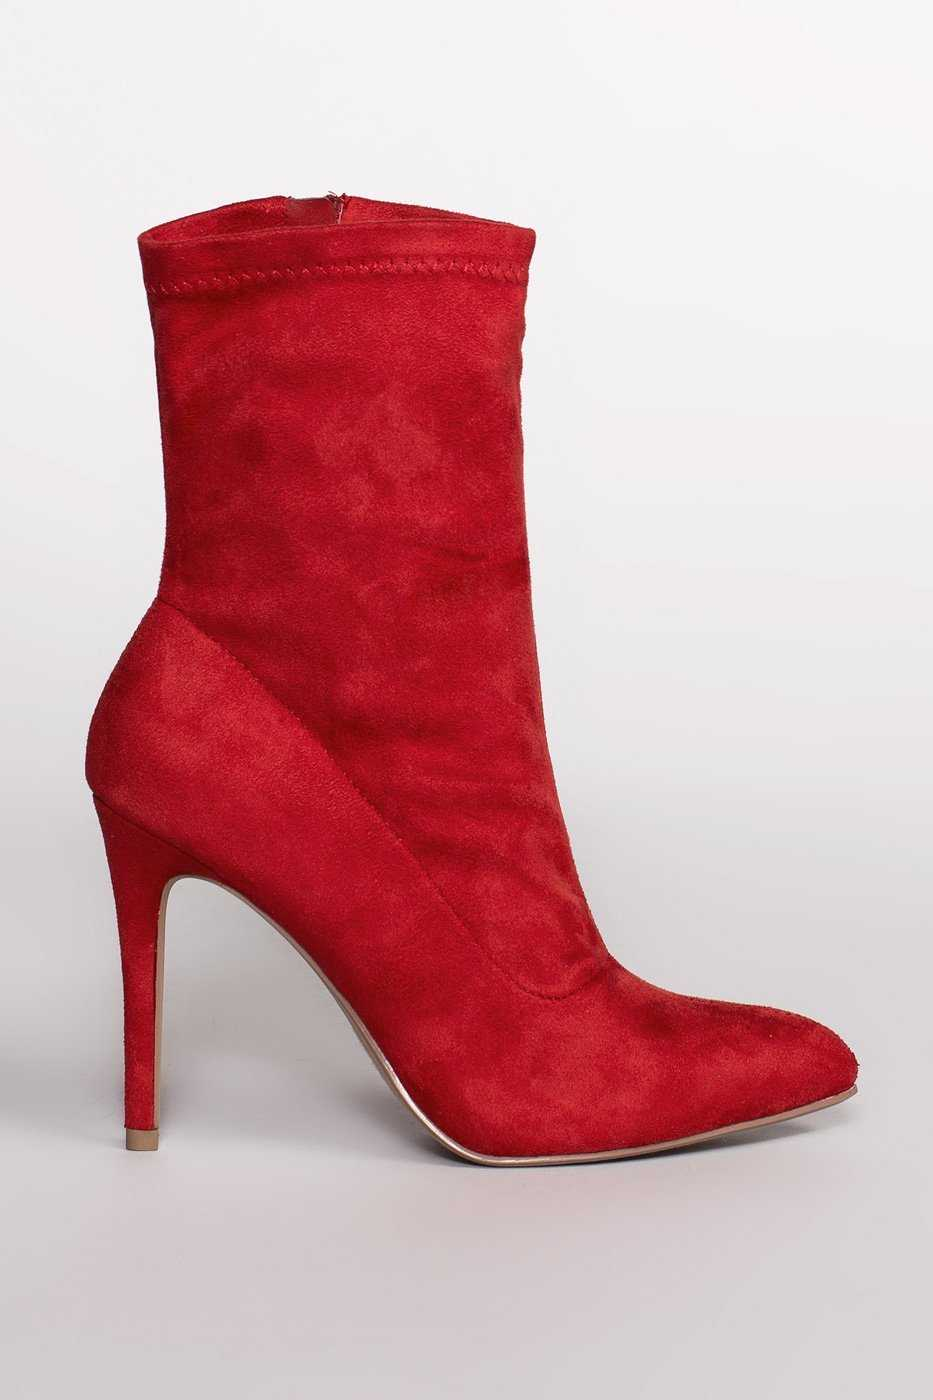 Booties - Skyee Sock Booties - Red Suede